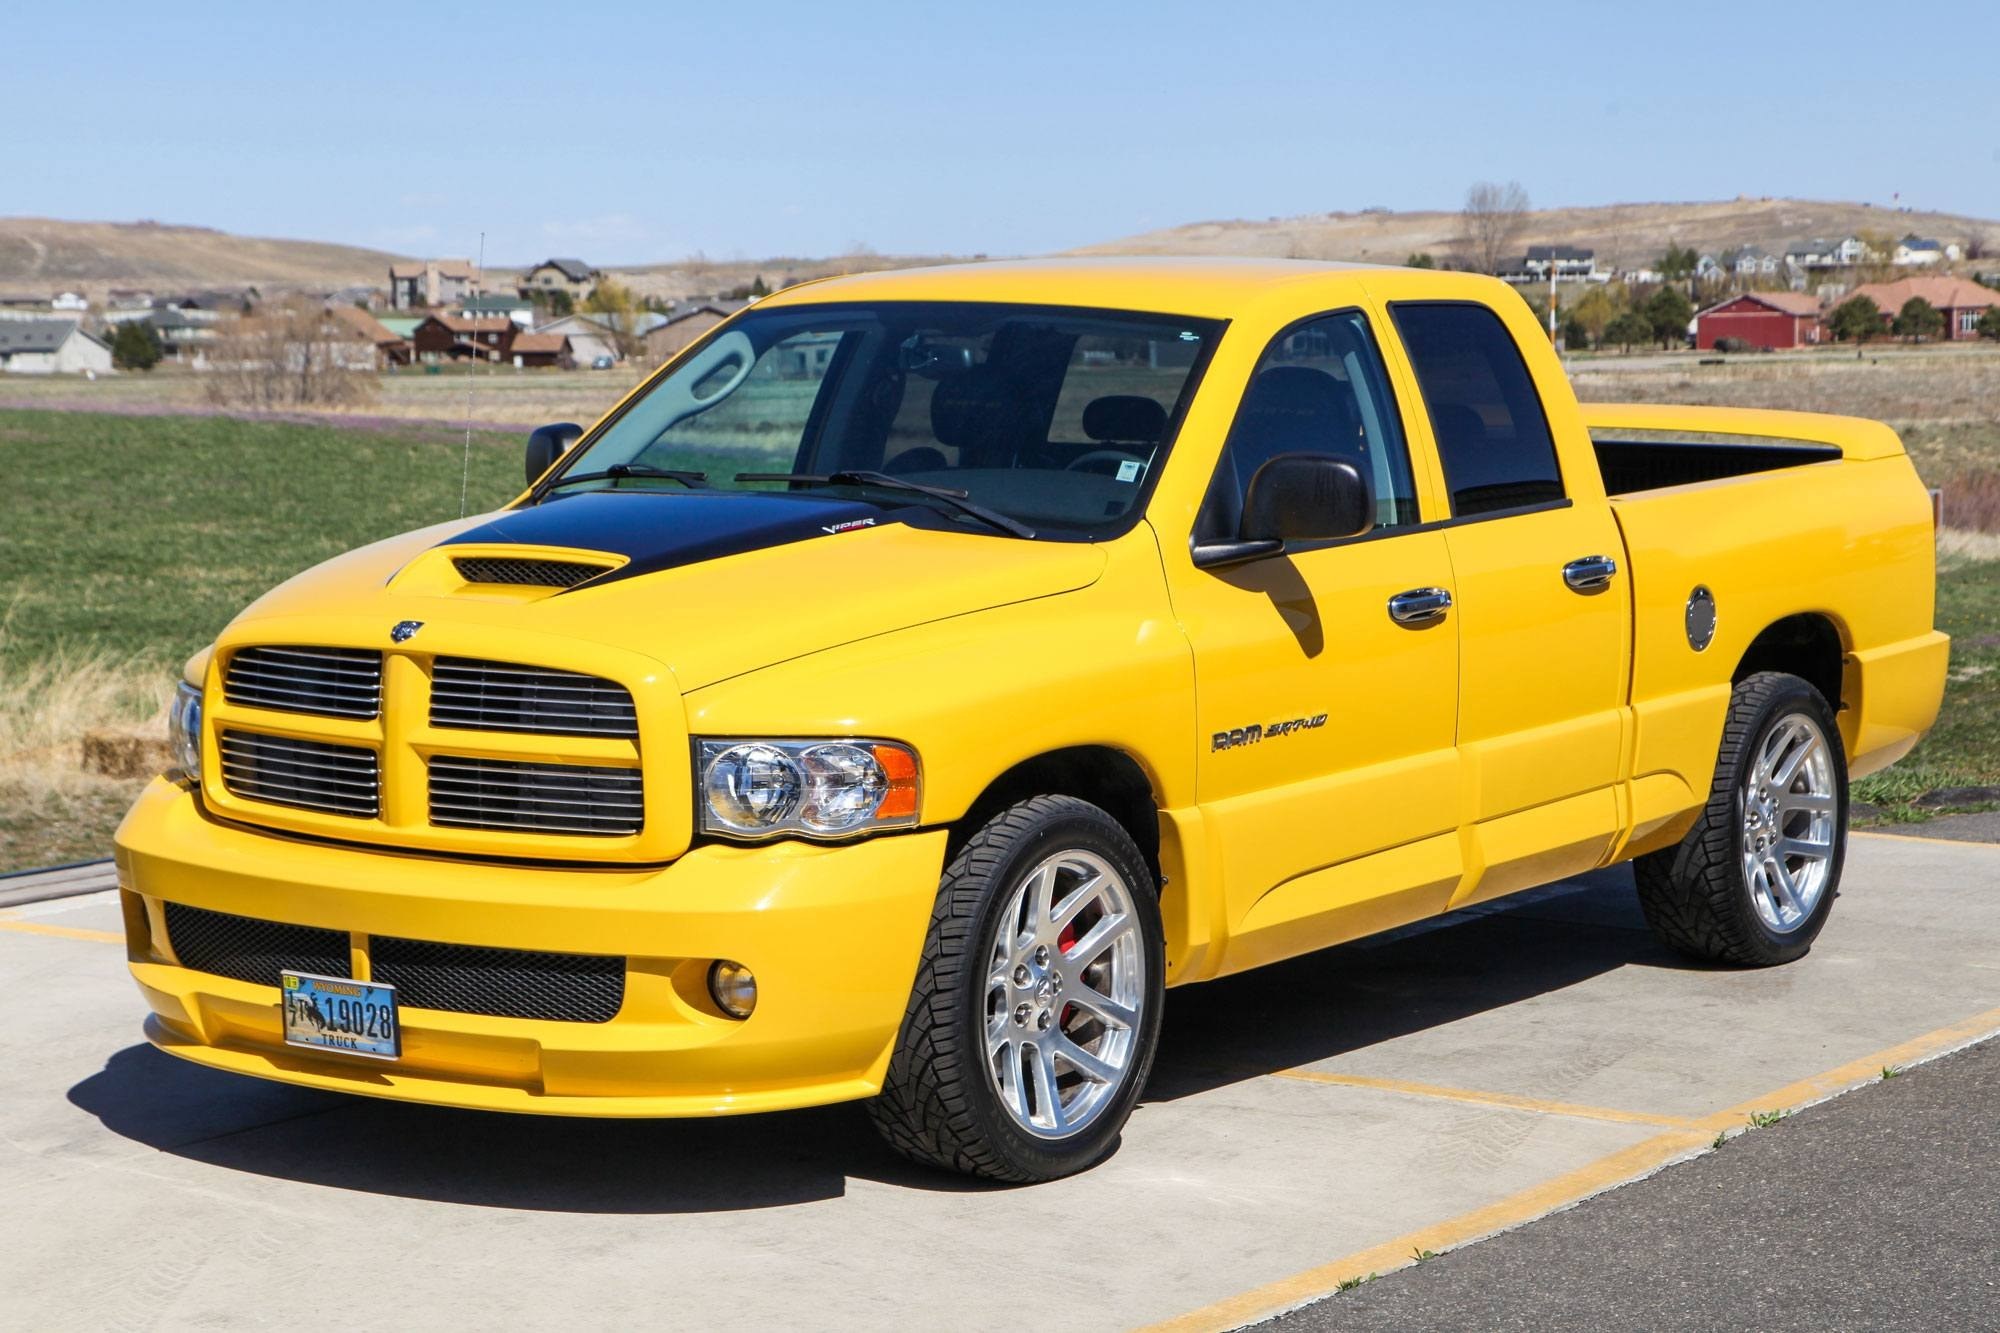 2005 Dodge Ram SRT-10 Yellow Fever Special Edition